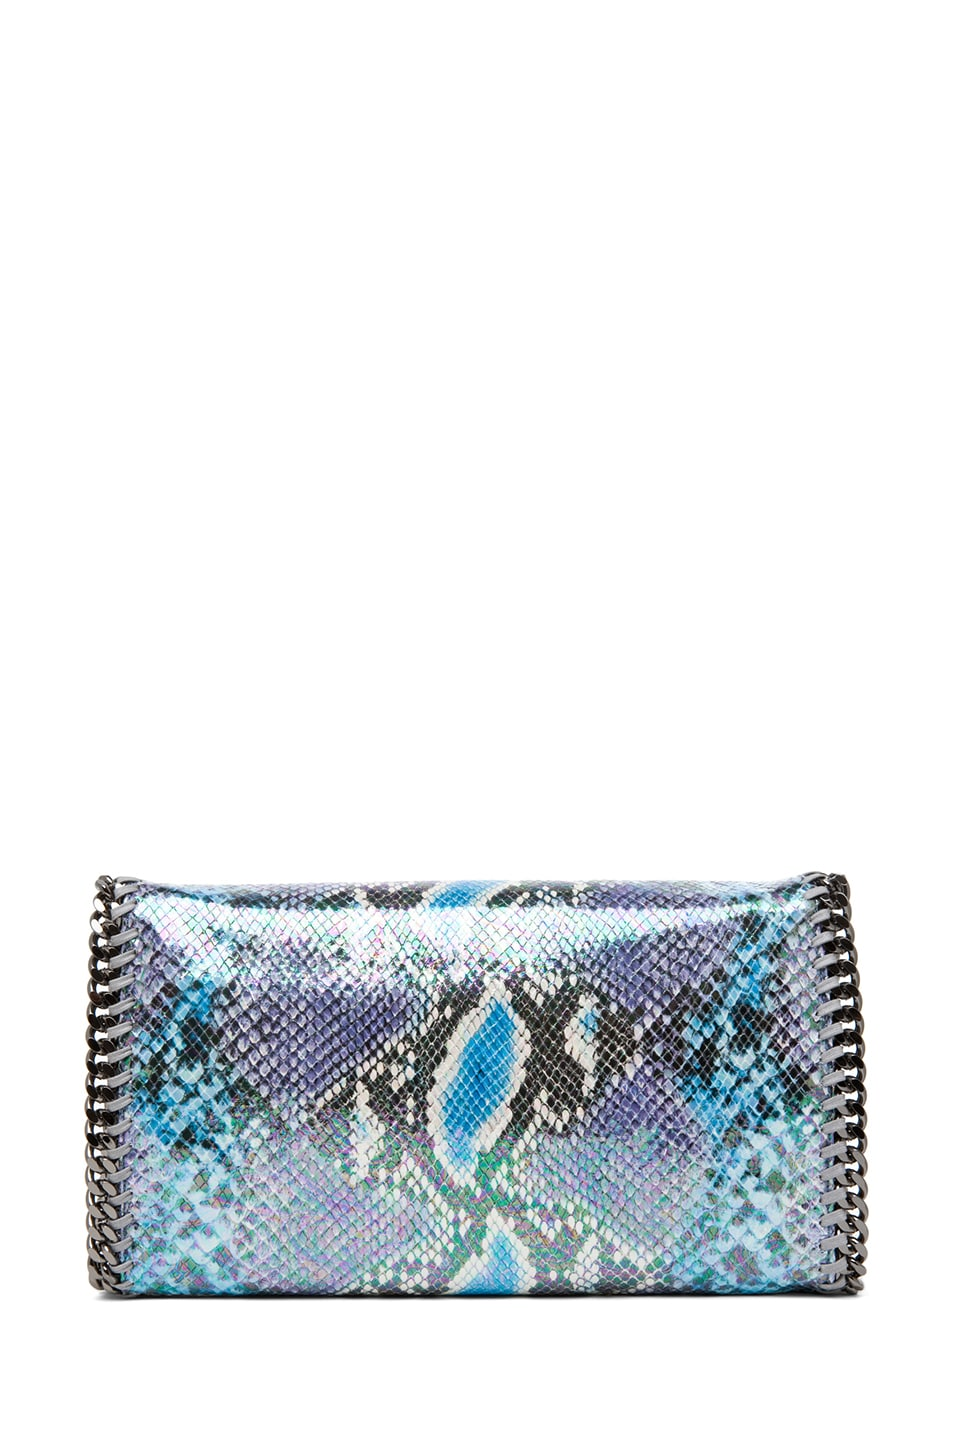 Image 2 of Stella McCartney Falabella Oleografic Python Clutch in Navy